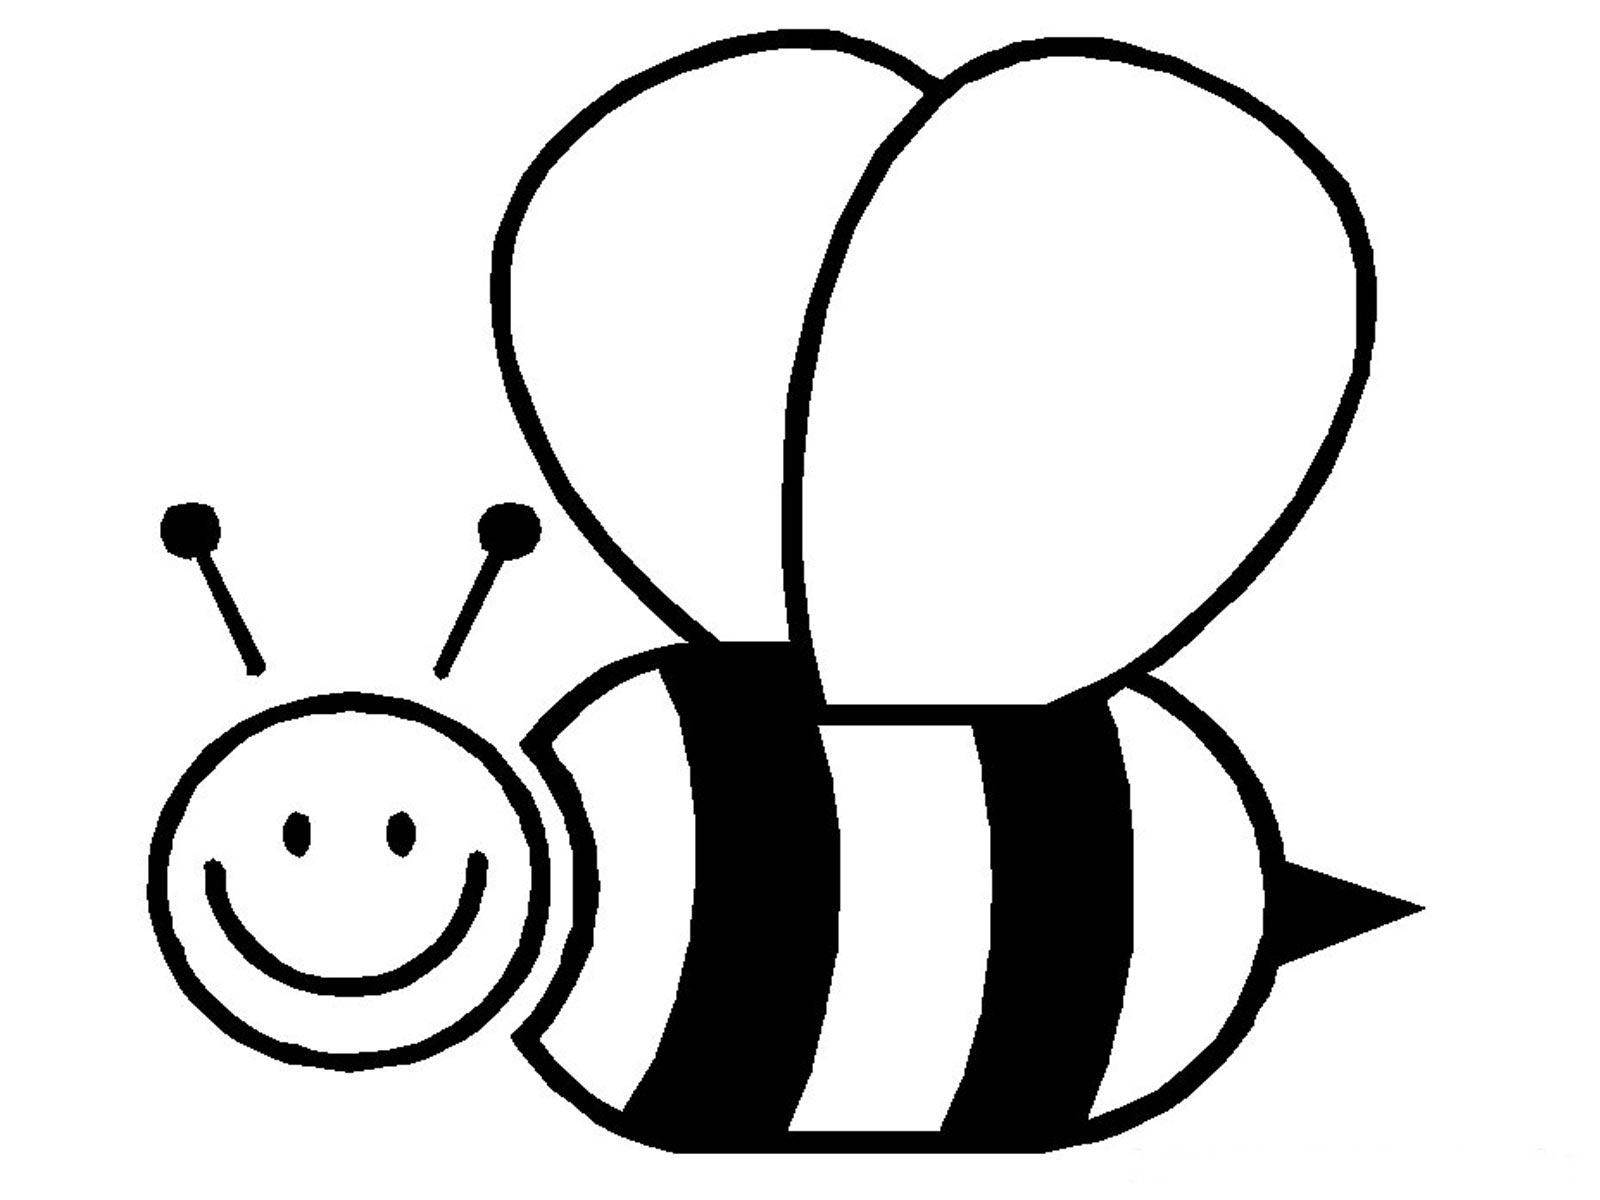 bees colouring pages pictures of bees to color amazing wallpapers colouring bees pages